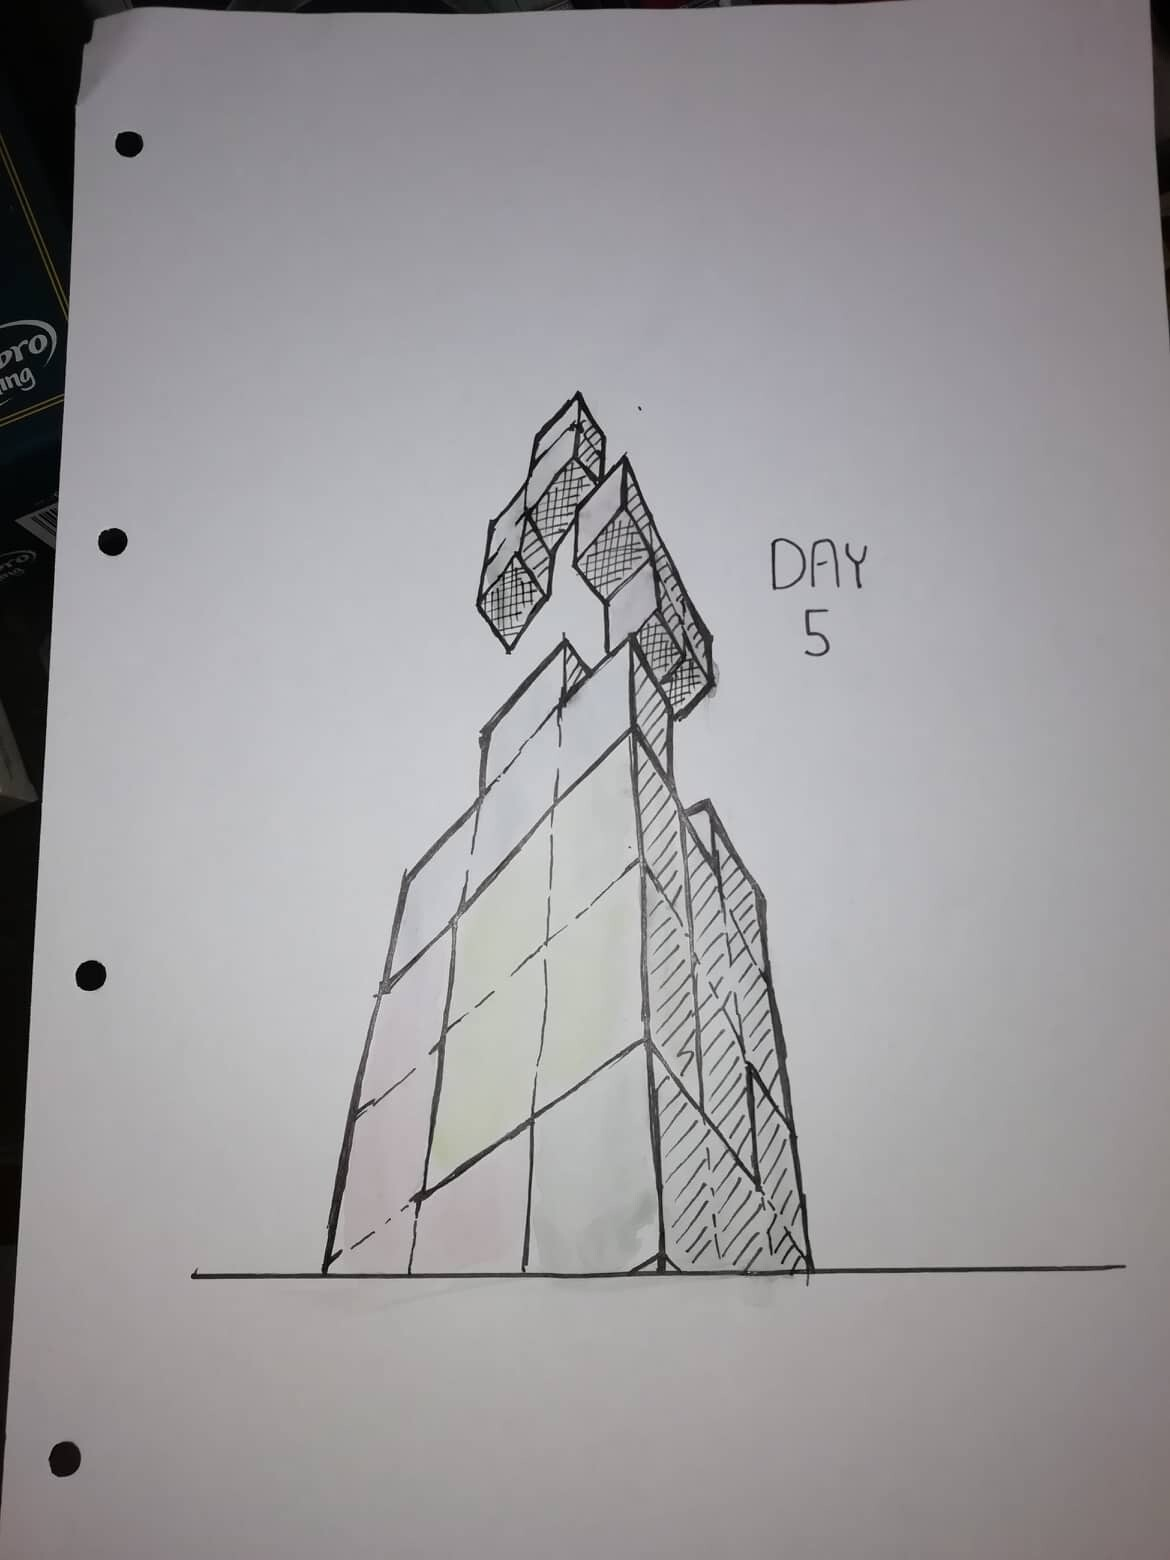 Day 5 - Build